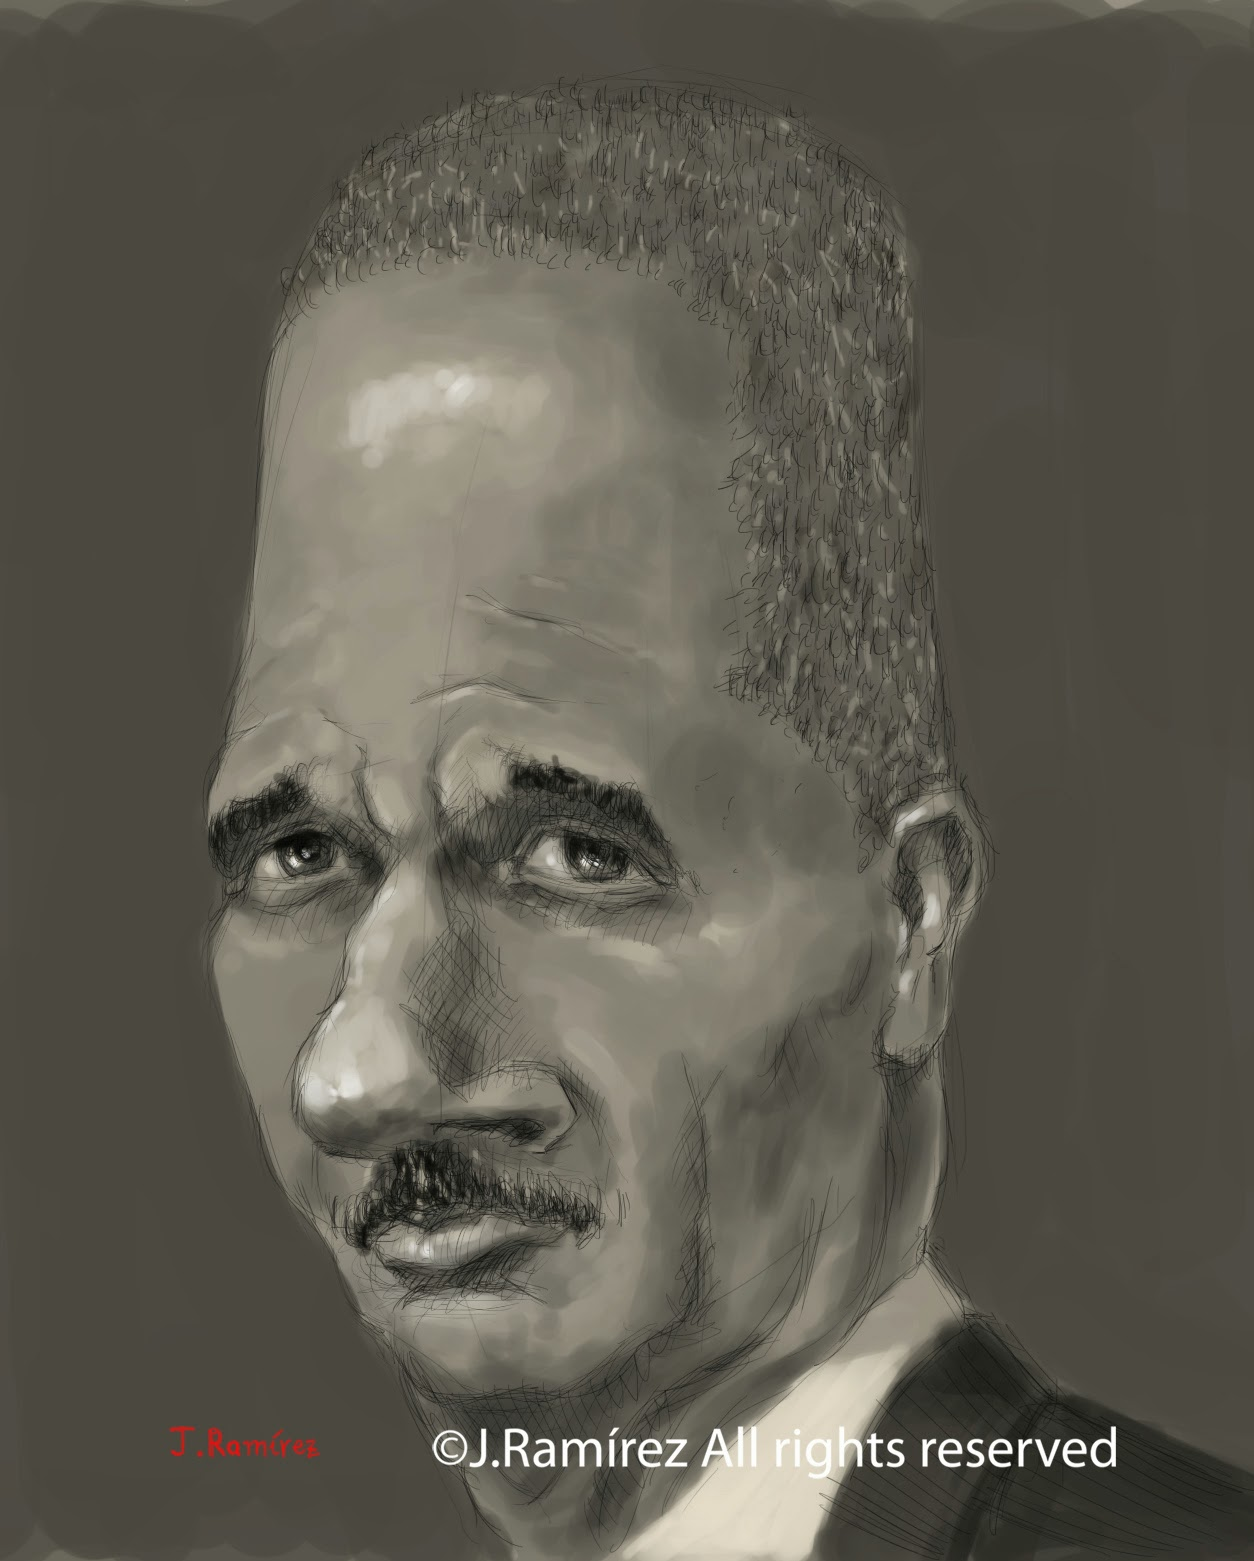 Eric Holder